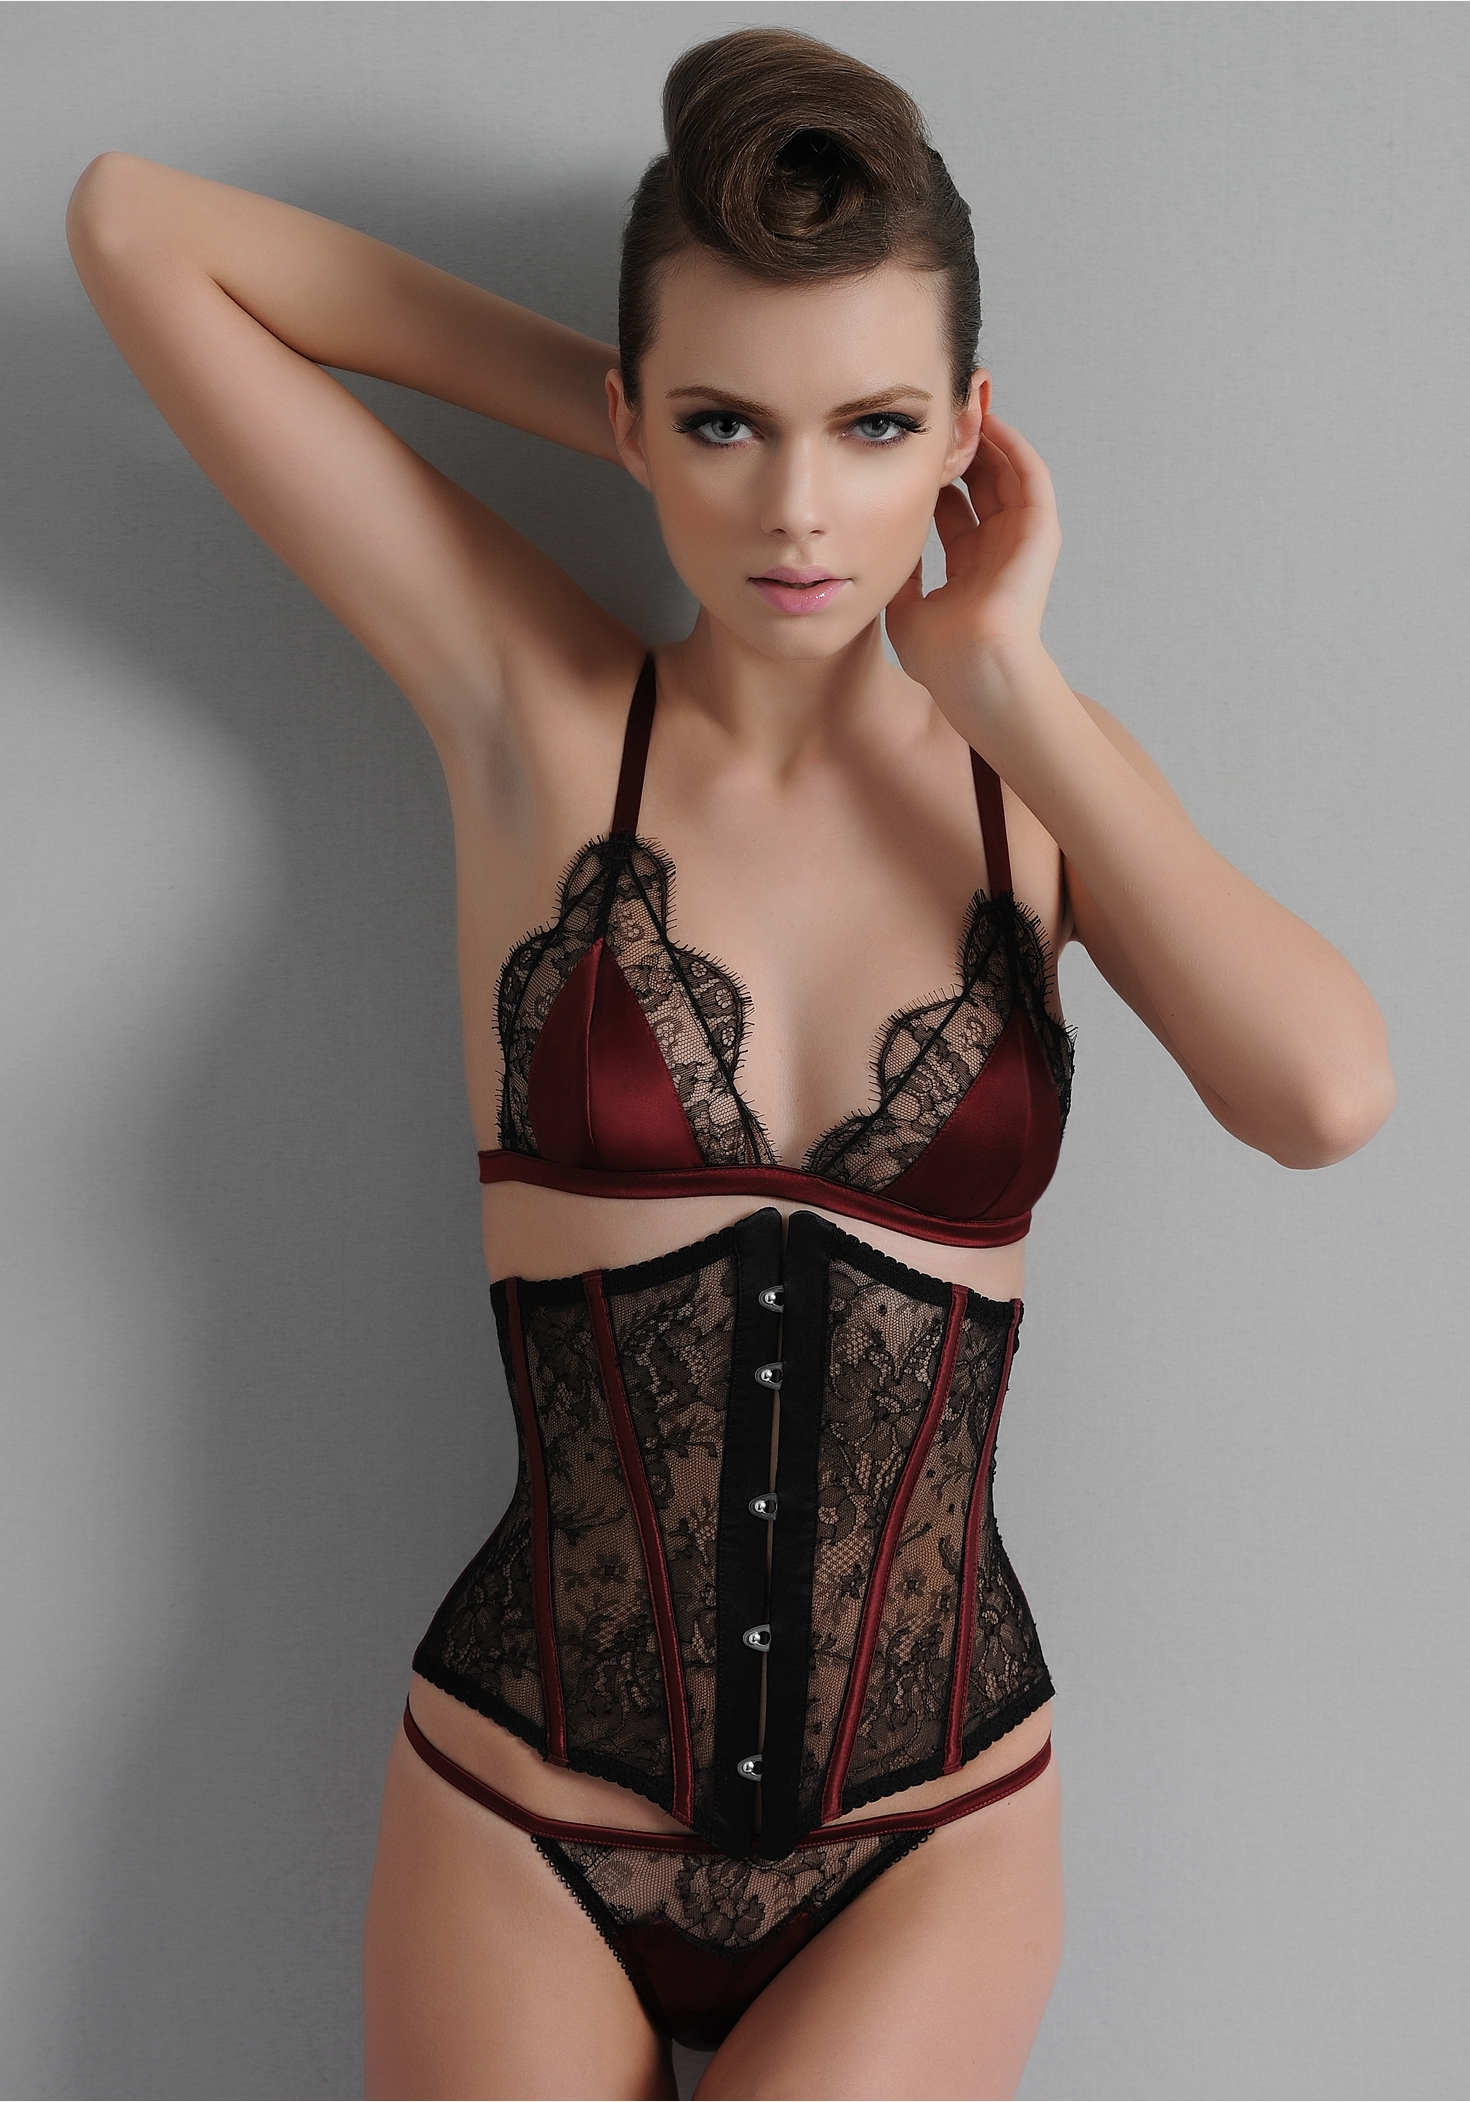 Christmas lingerie ix the sarrieri diamonds for Hot images blog